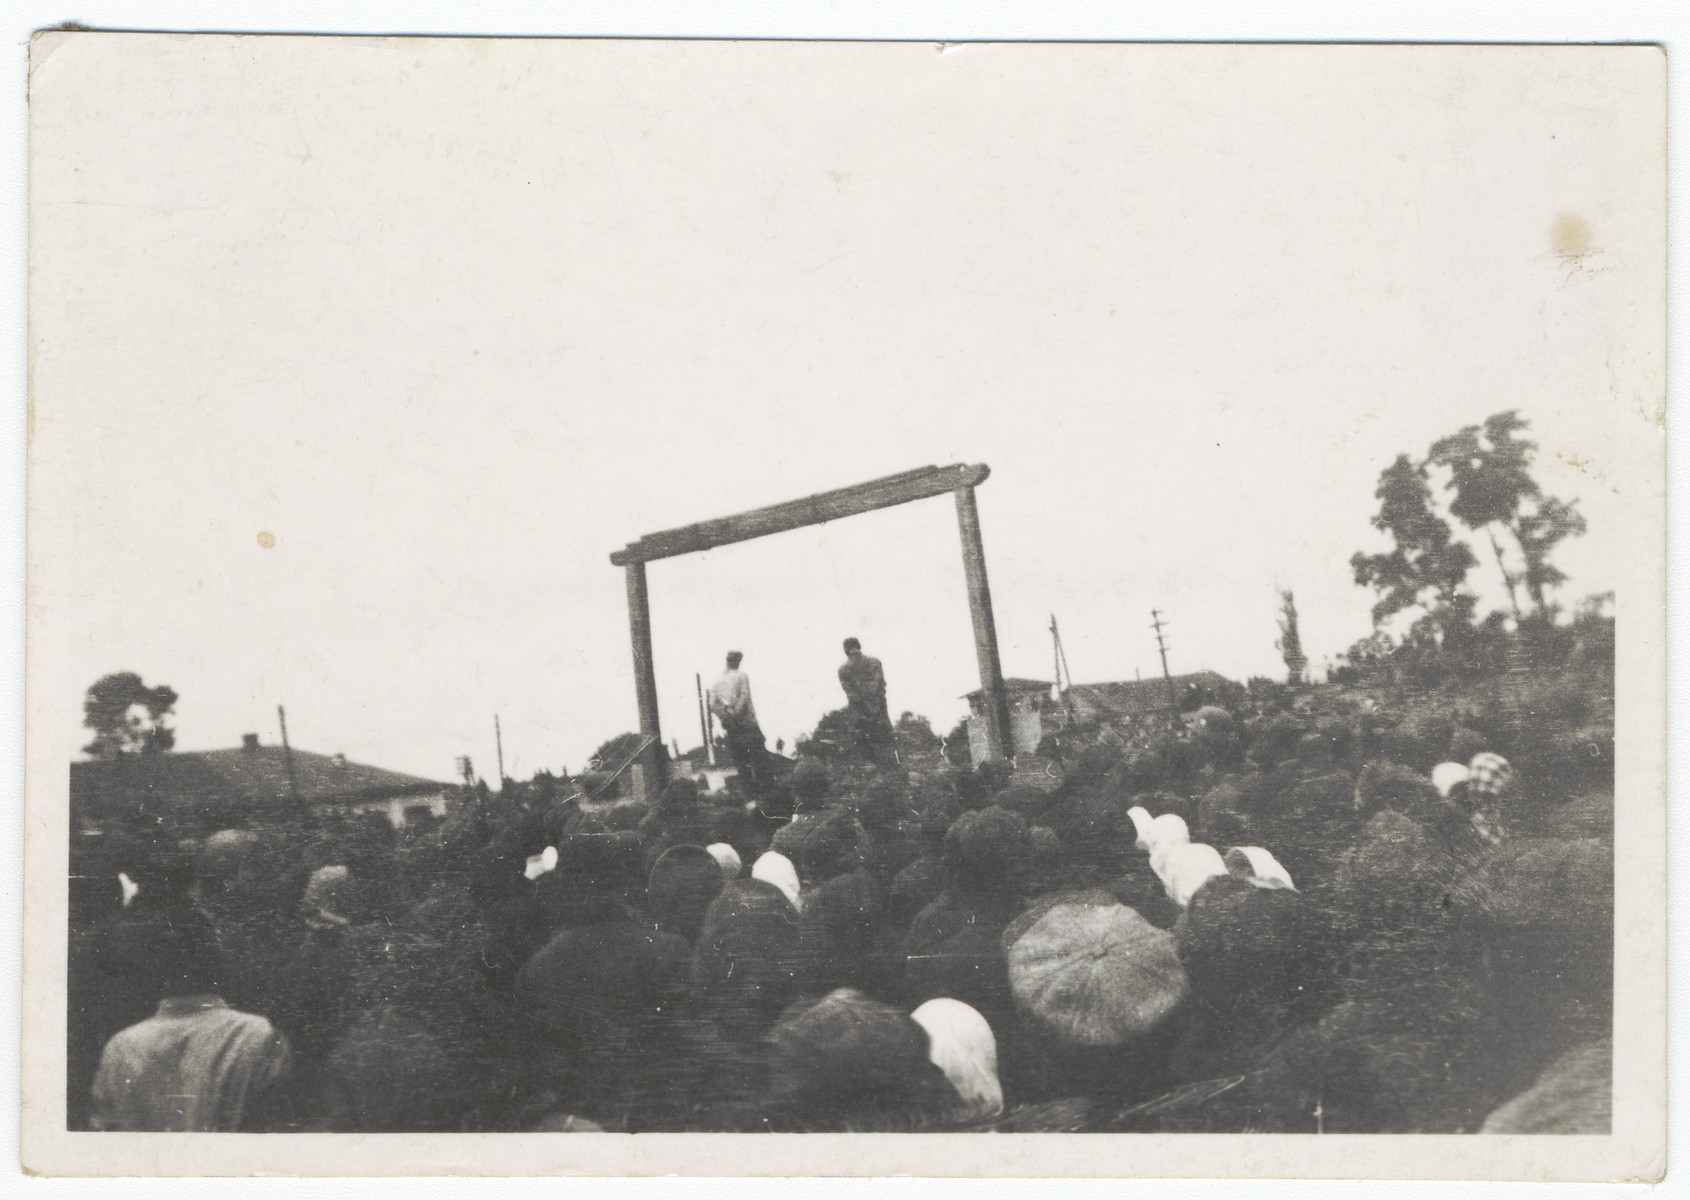 """Spectators witness the public execution of Mosche Kogan and Wolf Kieper.  The original caption reads """"Jewish judges and executioners now being executed""""."""